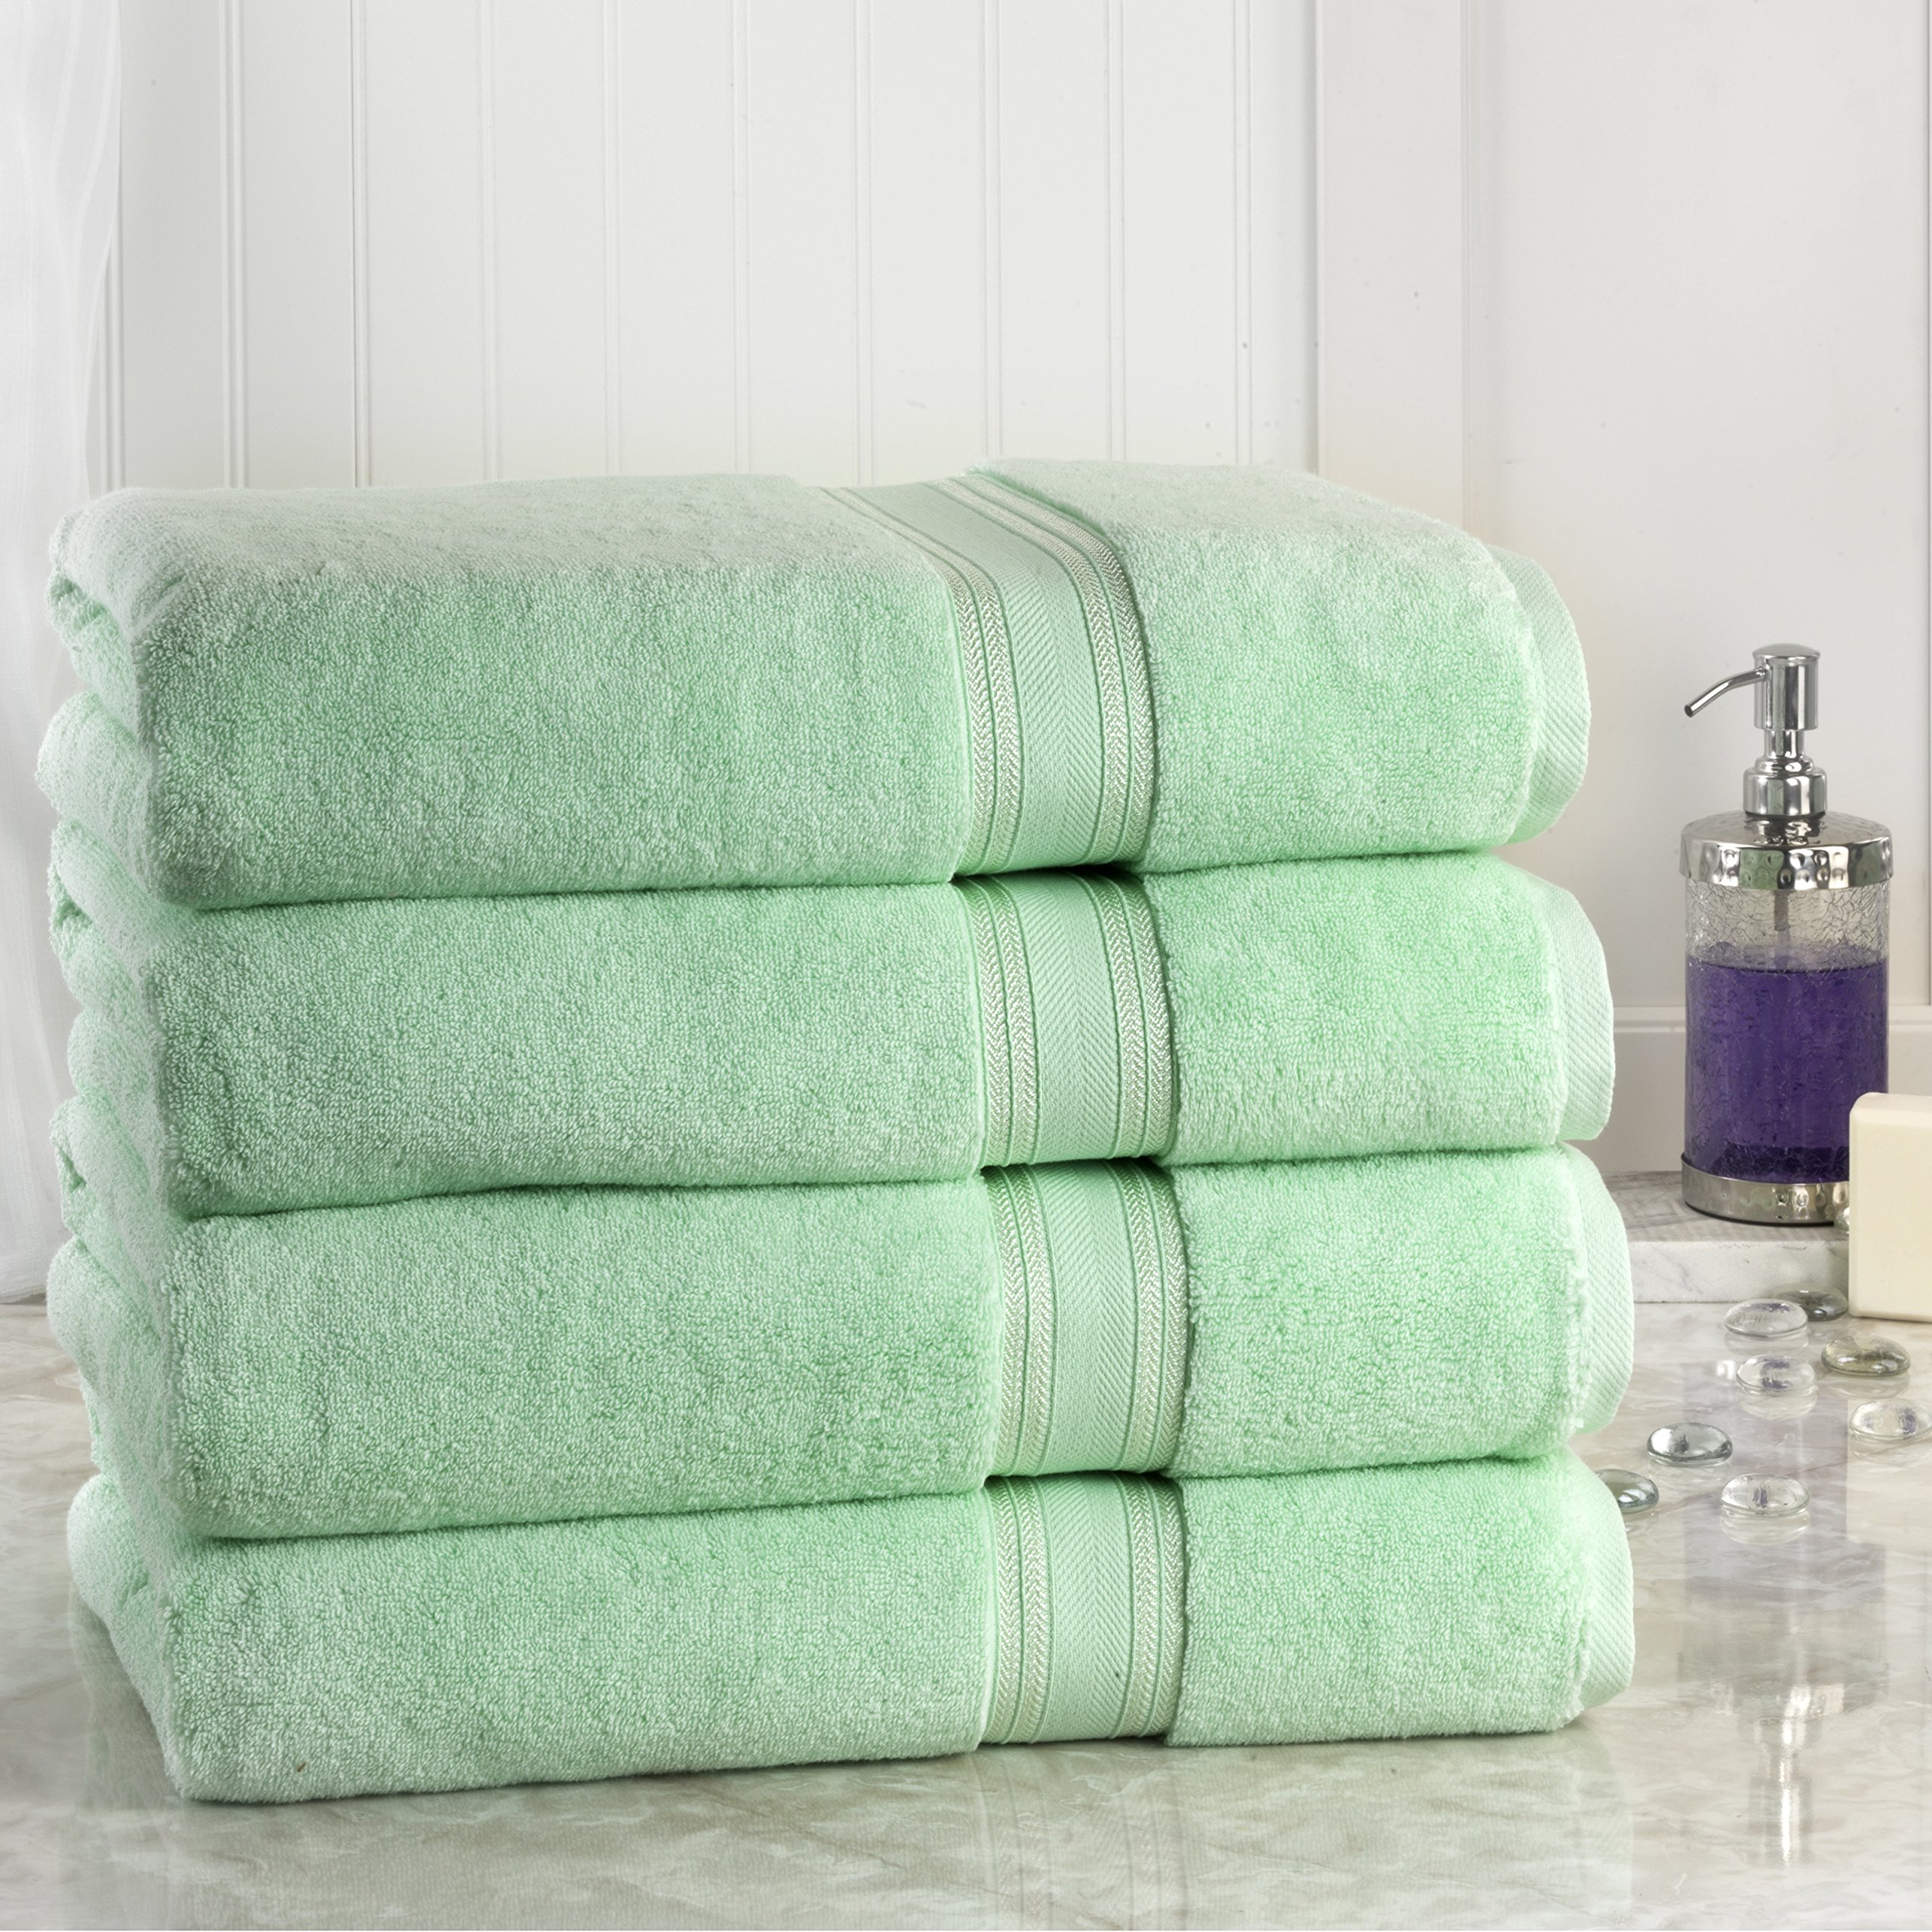 Lezeth Collection Super Absorb 100% Zero Twist Oversized Bath Sheets, Jade (Pack of 4)